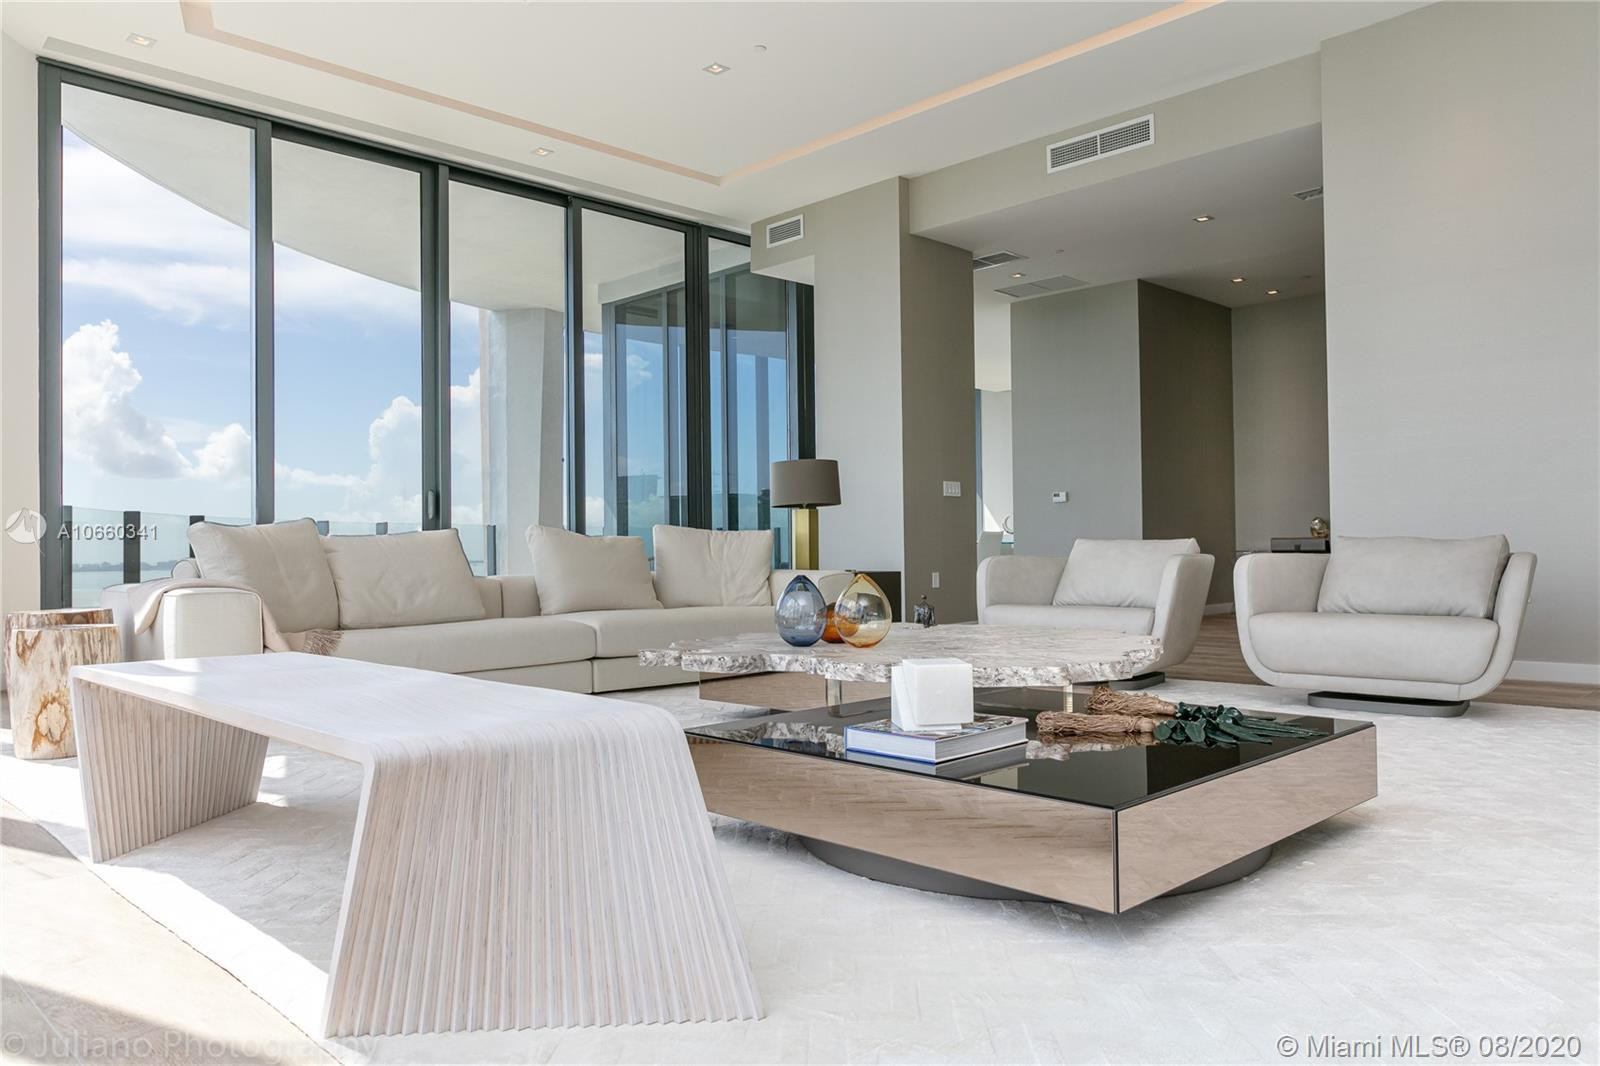 Welcome to UPHB in Coconut Grove's newest development; Park Grove. Upon arrival from your private elevator, UPHB offers 180 degrees of expansive views of Biscayne Bay & our city skyline. 5 BR/ 5.5 BTH, 2,930 SF of private balcony & roof top terrace with pool, Jacuzzi, & summer kitchen. Designed by Pritzker Prize-winning Architect Rem Koolhaas/OMA. Located on 5-acres of waterfront in Coconut Grove, the most picturesque part of Miami and home to its wealthiest residents. Park Grove offers over 50,000 SF of resort style amenities including wellness lounge, fitness rooms, spa, steam, sauna, pool, cabanas, media room, valet, concierge & more. Residence has been partially curated by Artefacto. Residence is also available for rent for $35K/month.